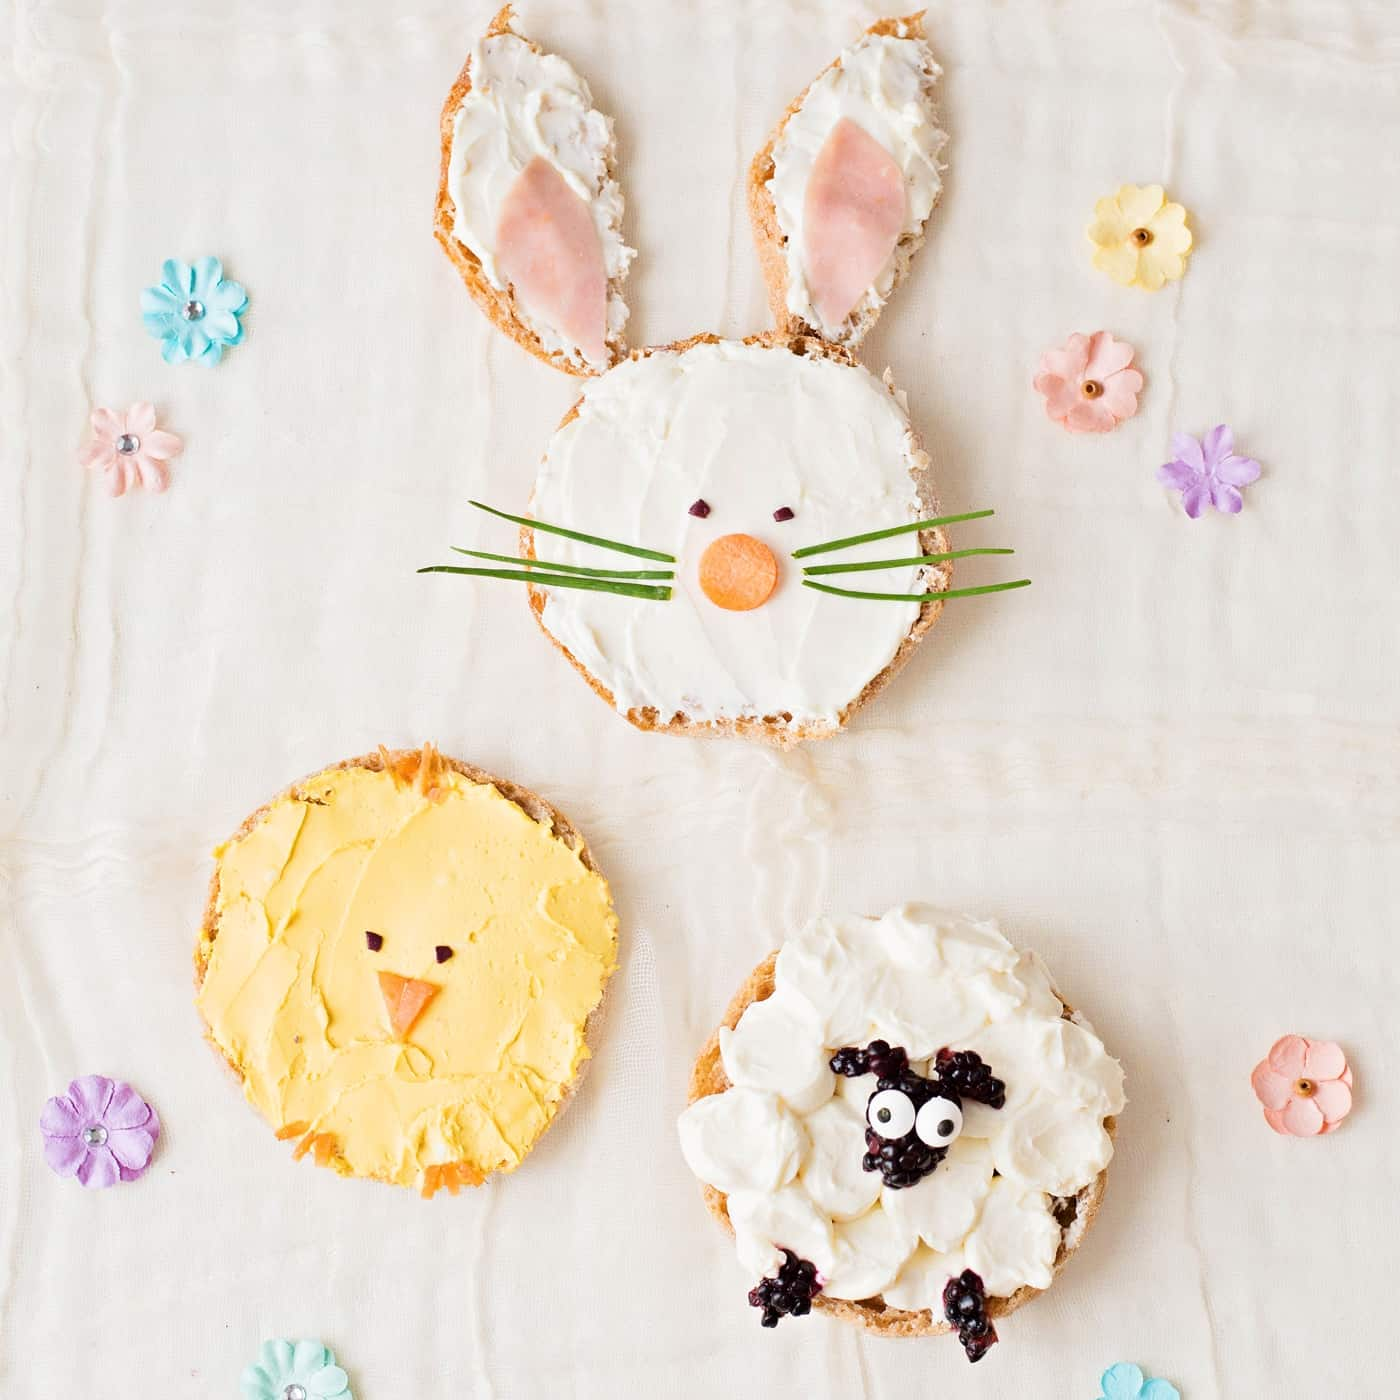 Bunny Chick and Sheep Easter Toast